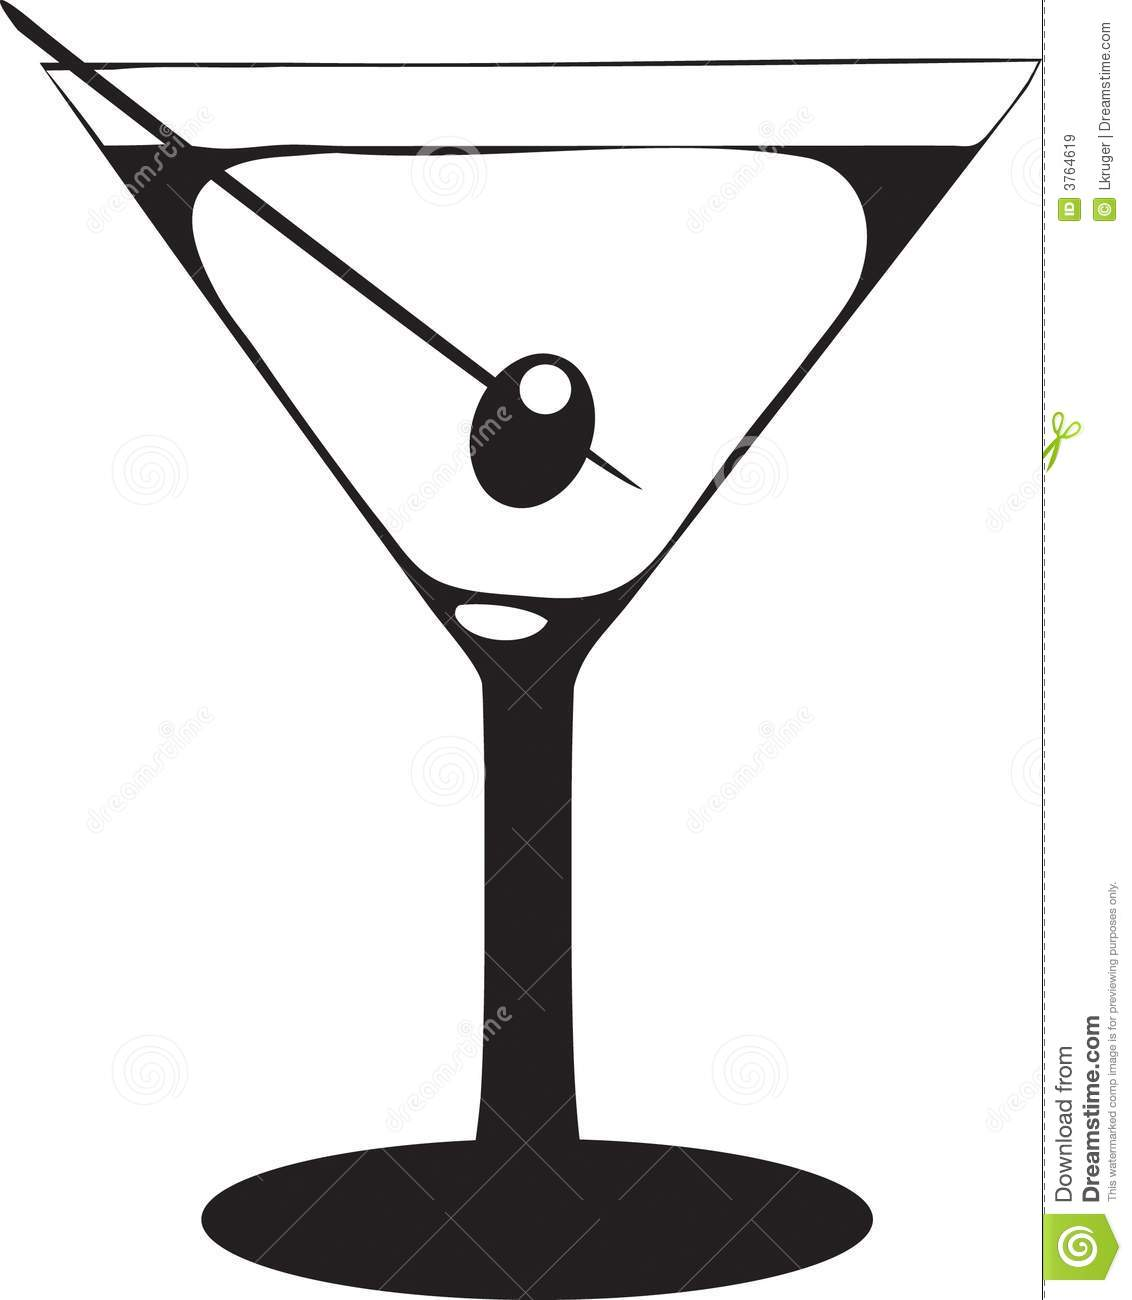 Clipart martini glass with olive picture black and white 97+ Martini Glass Clip Art   ClipartLook picture black and white